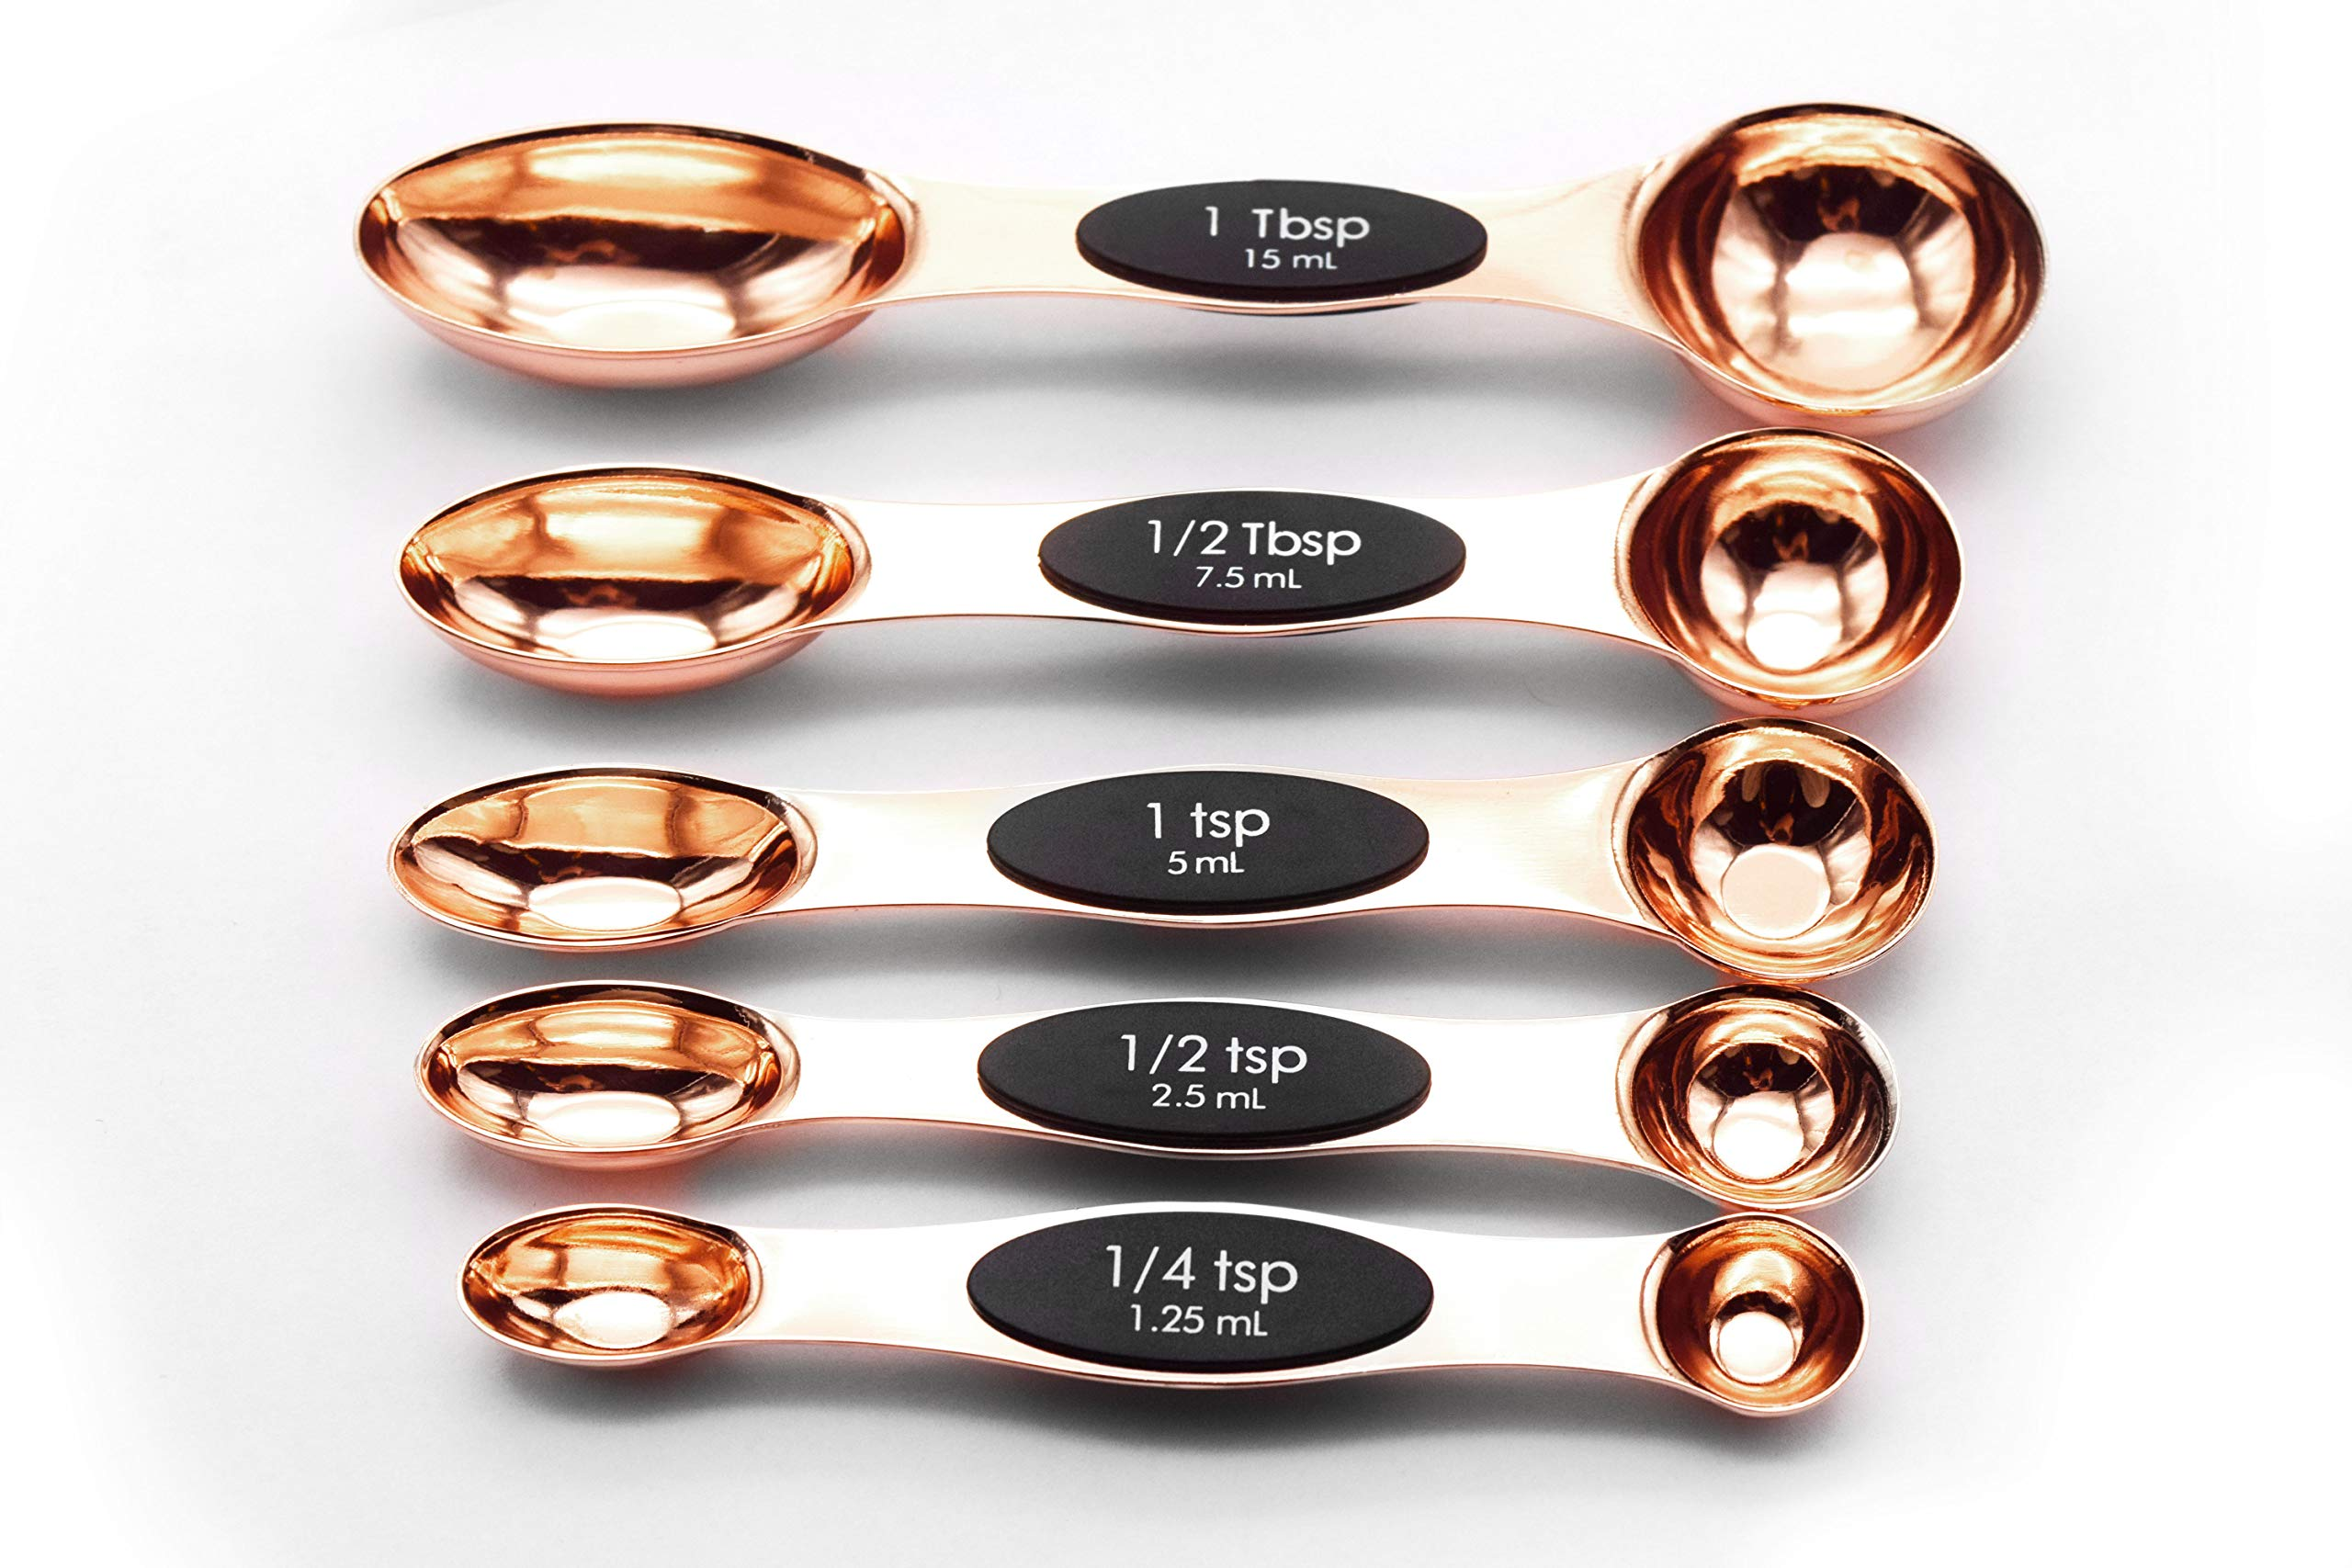 Magnetic Stainless Steel Measuring Spoons, Set of 5, Rose Gold Multifunctional Teaspoon and Tablespoon BPA Free Double End Nesting for Home Kitchen,Baking Supplies, Cooking Tools, A Lovely Gift